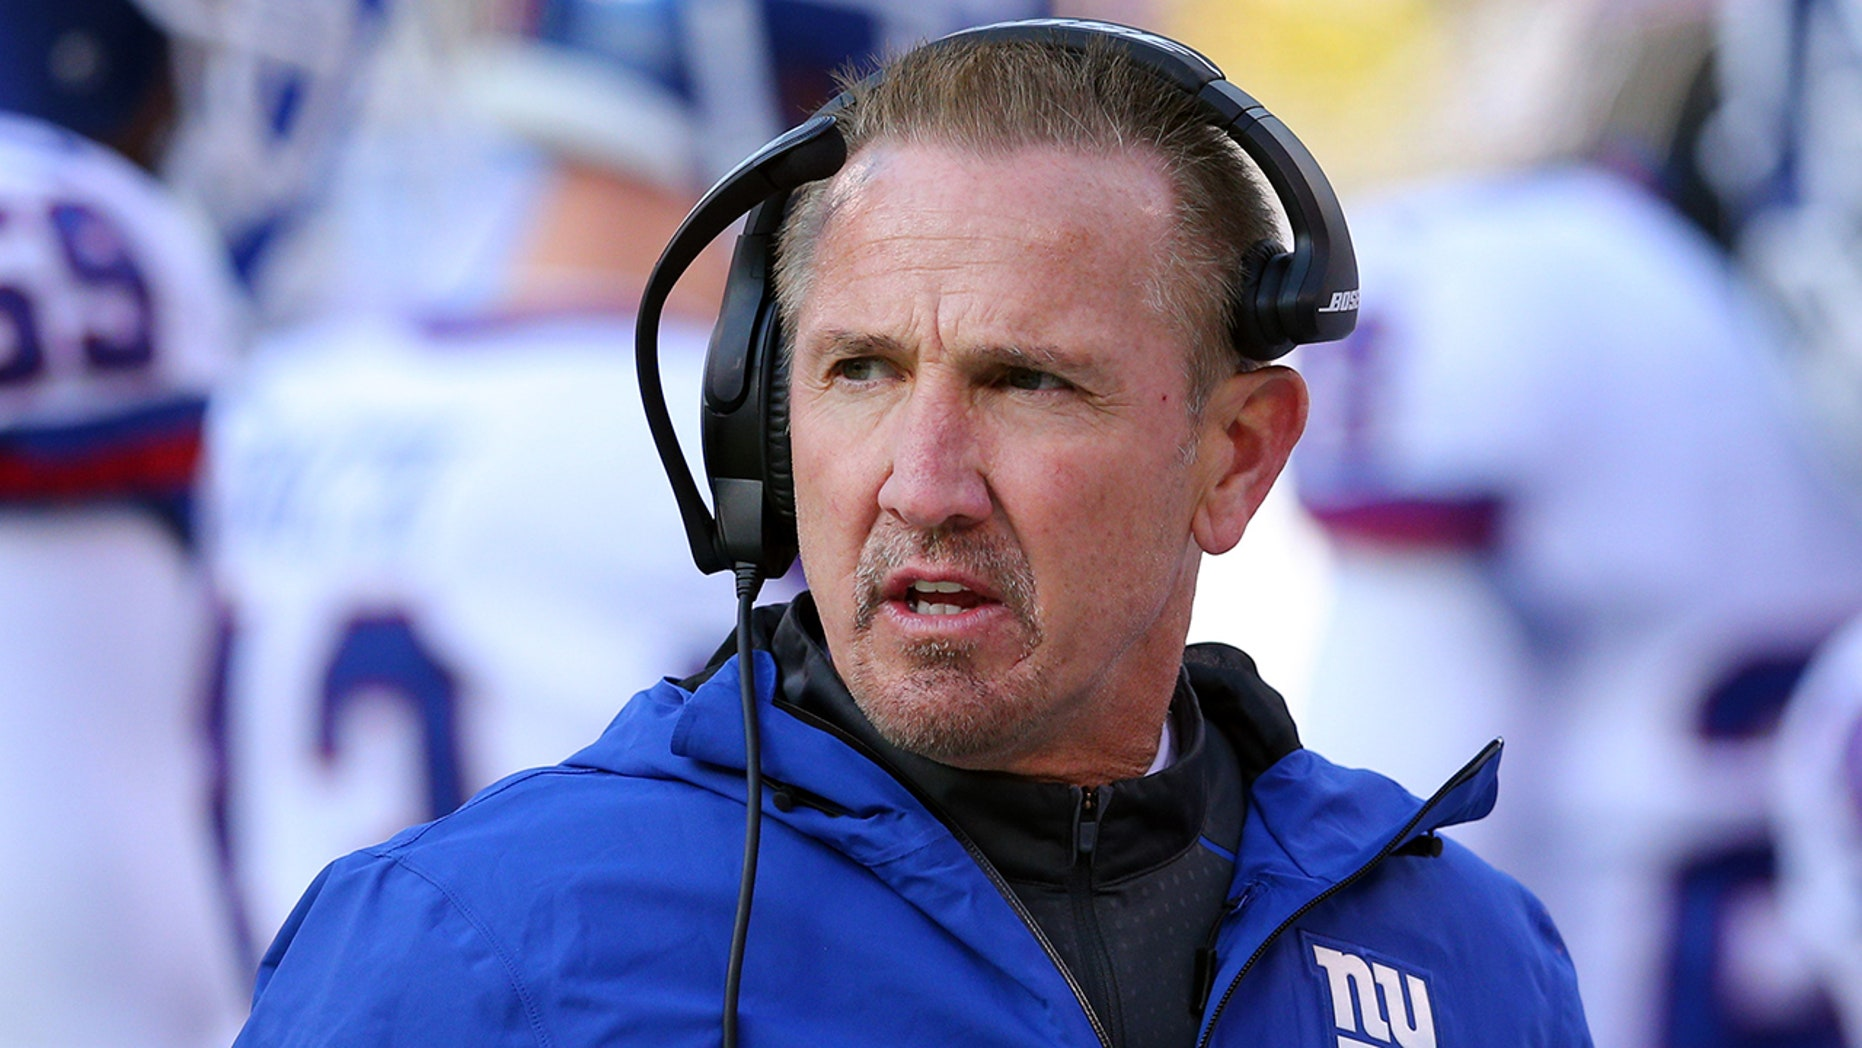 Former Philadelphia Eagles defensive coach Steve Spagnuolo said Monday in a radio interview that his defensive staff was suspicious the New England Patriots knew their signals during Super Bowl XXXIX.